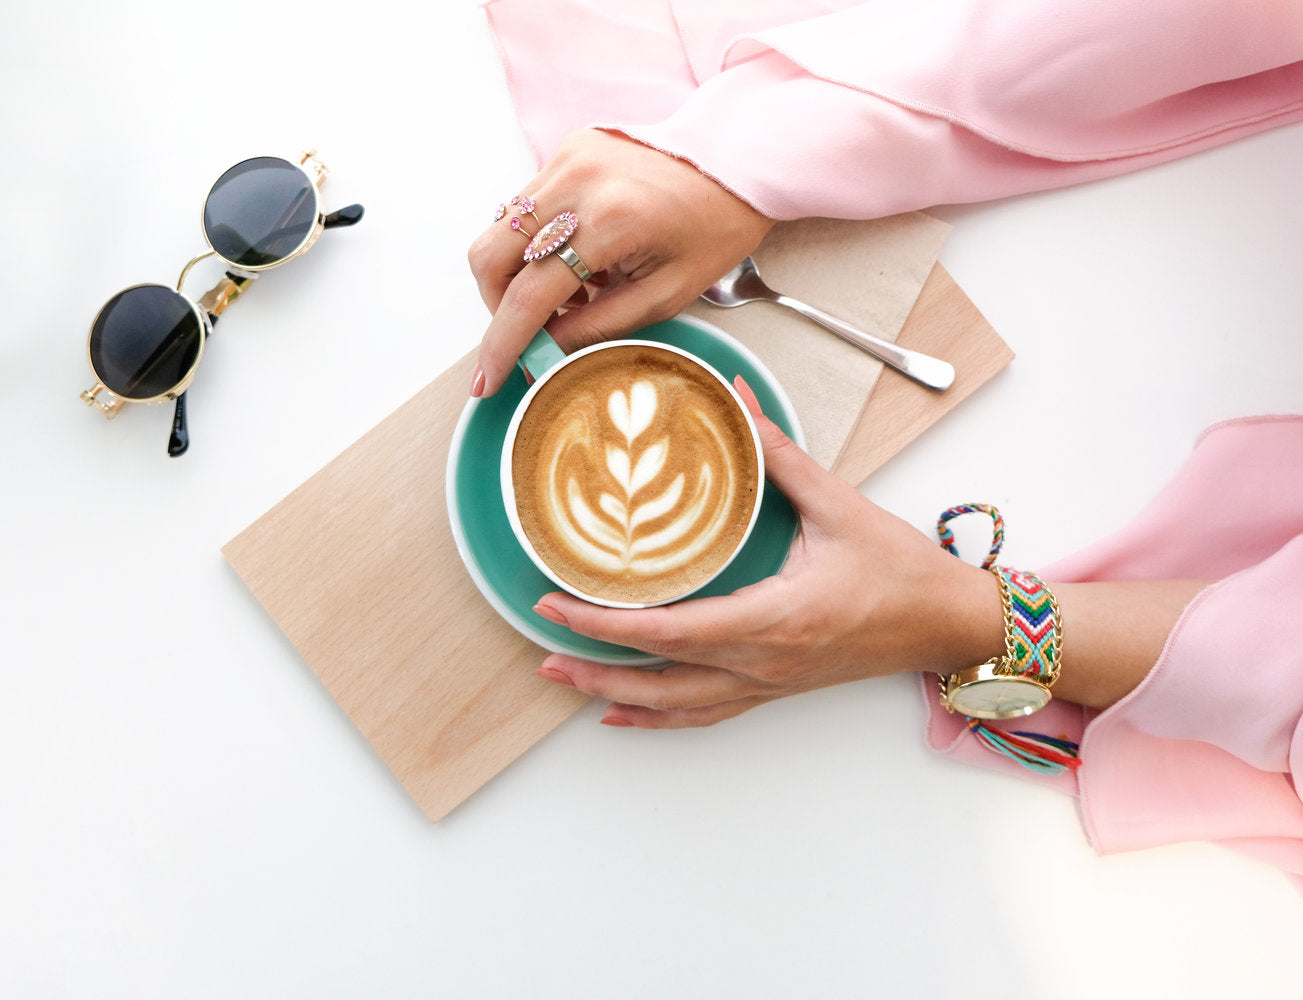 lady in pink holding a cup of coffee